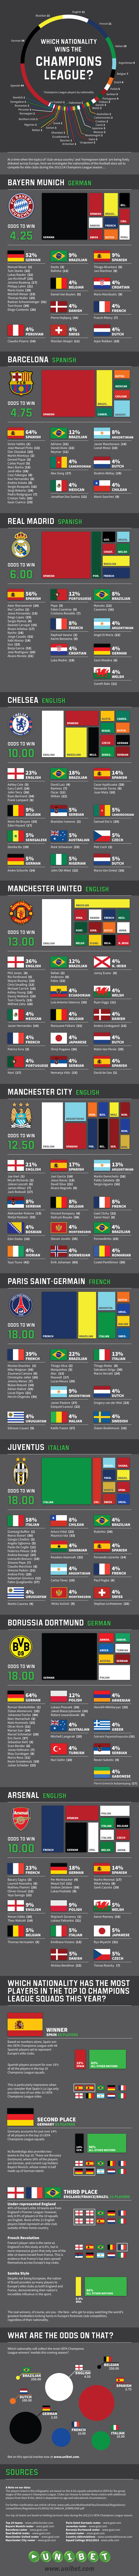 Which Nationality Wins the Champions League